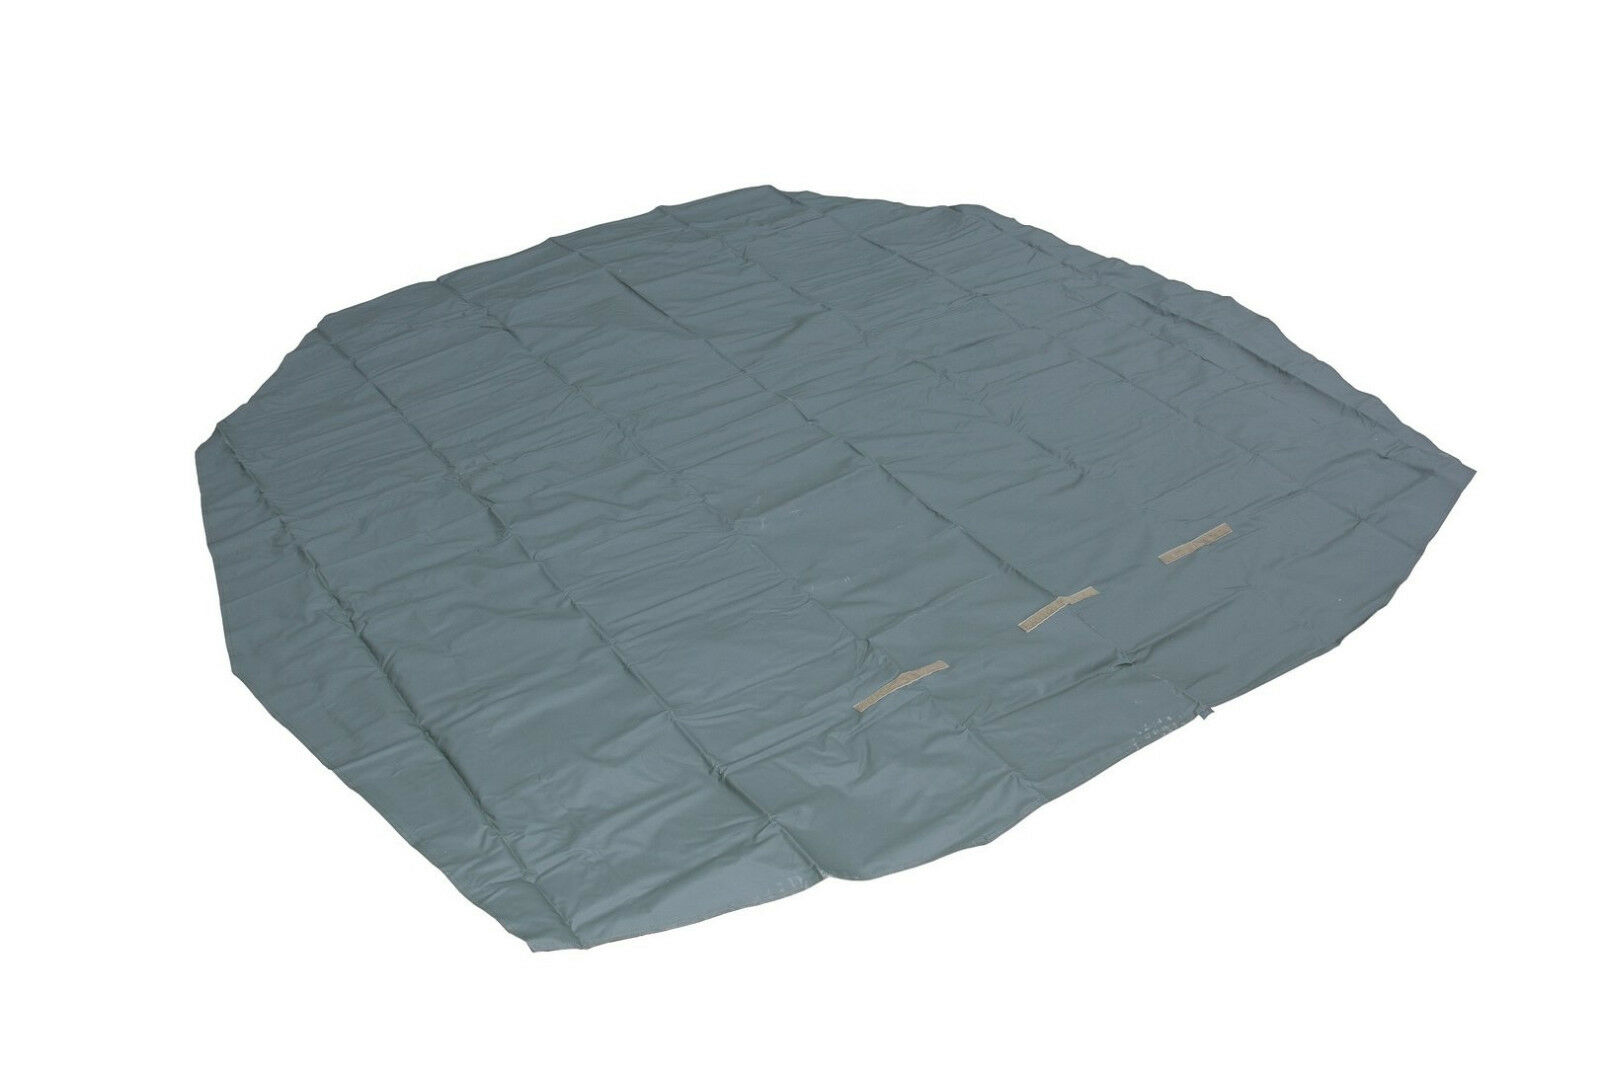 Nash Double top 1 Man heavy duty duty duty groundsheet mk4 t1034 suelo lona carpa lona c0403b